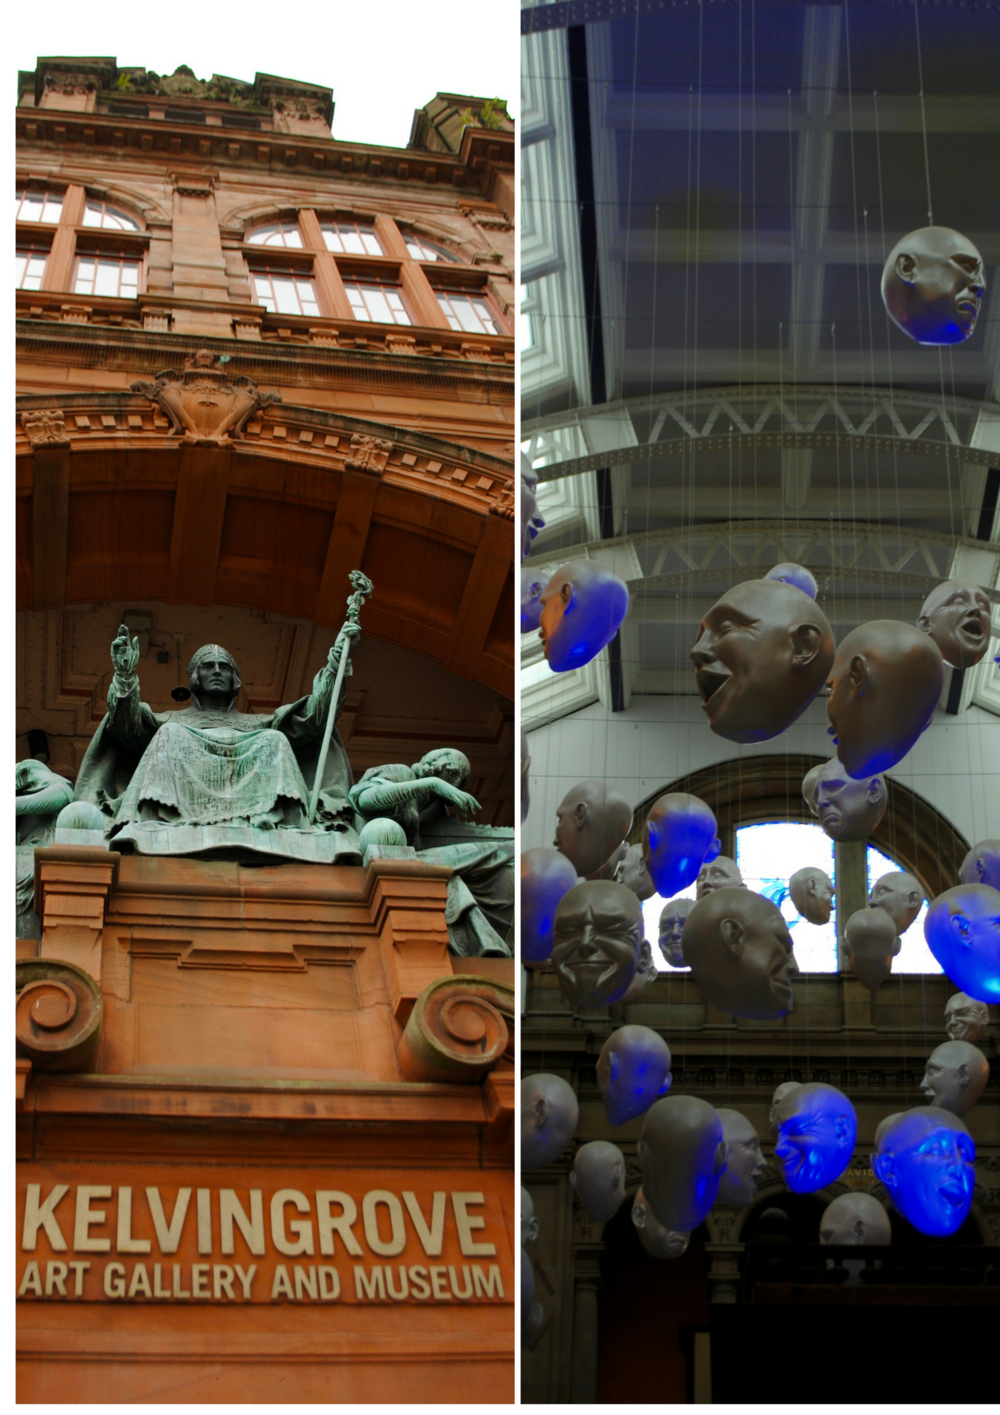 Kelvingrove Art Gallery and Museum - full of cool stuff, weird stuff, pretty stuff.